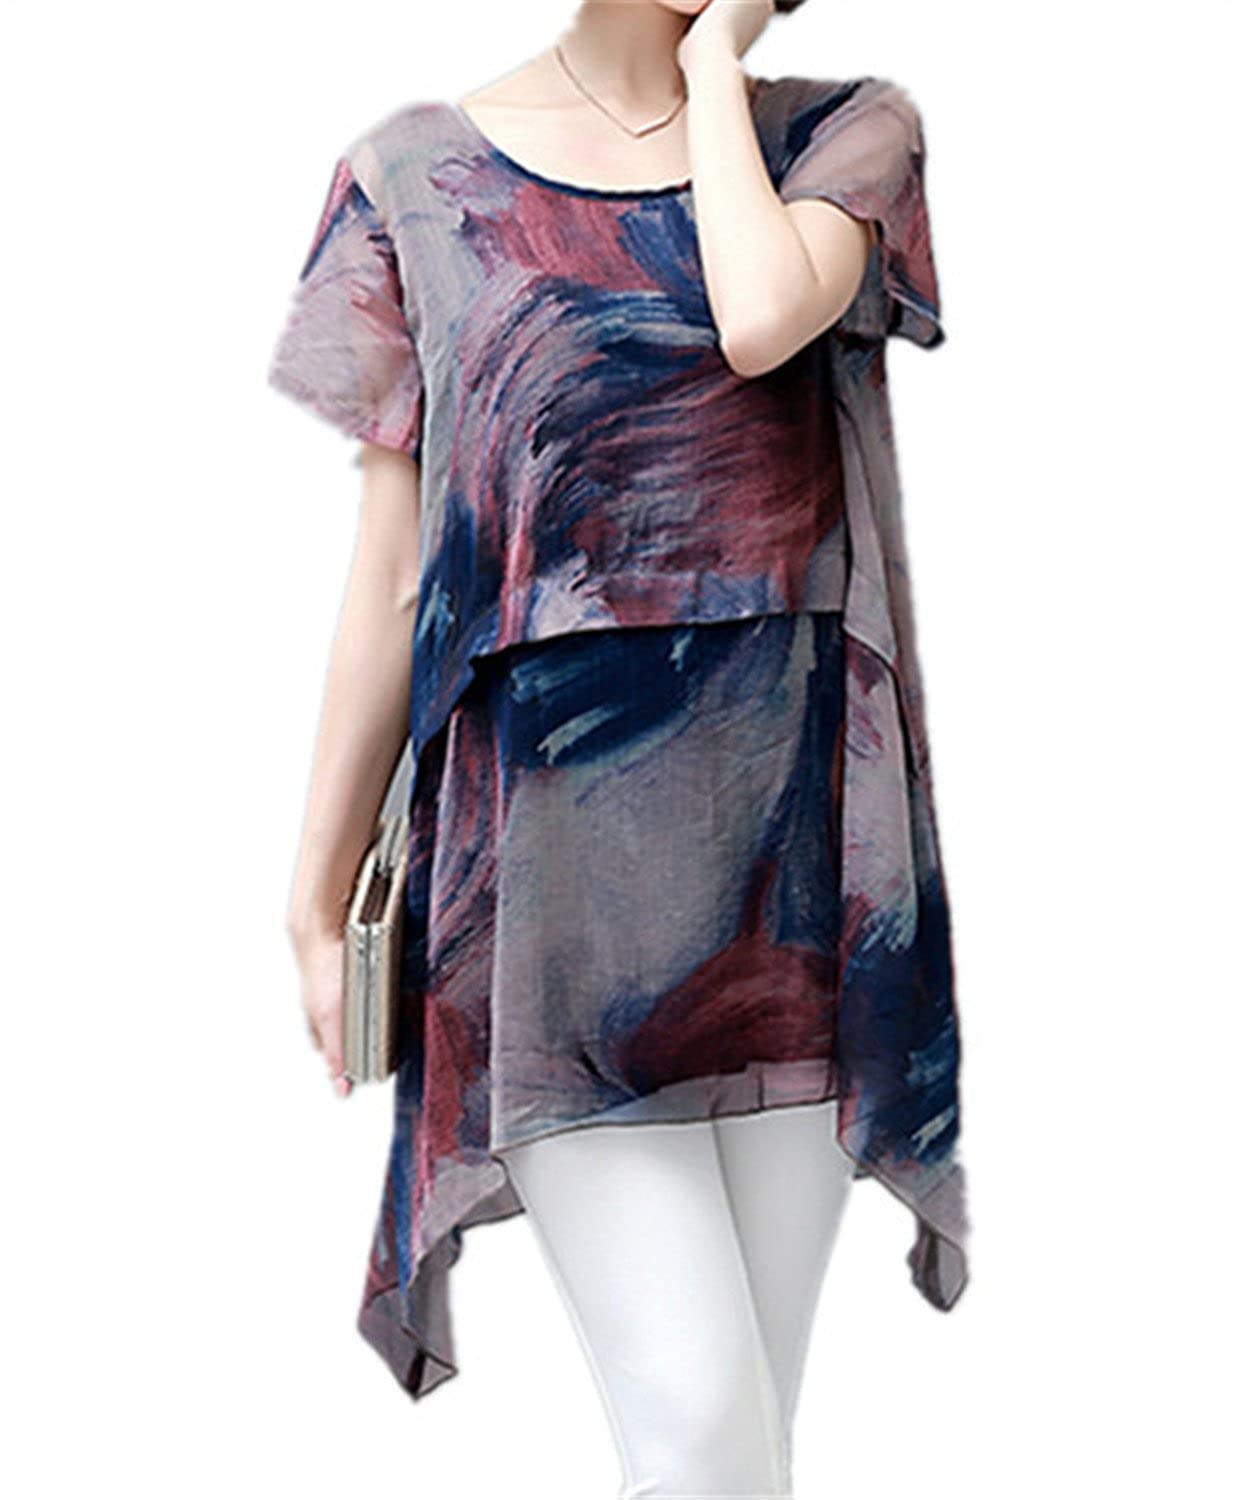 QIHUOKEJU Plus Size Women Long Chiffon Blouse Brown Fashion Chiffon Short Sleeve Shirt at Amazon Womens Clothing store: